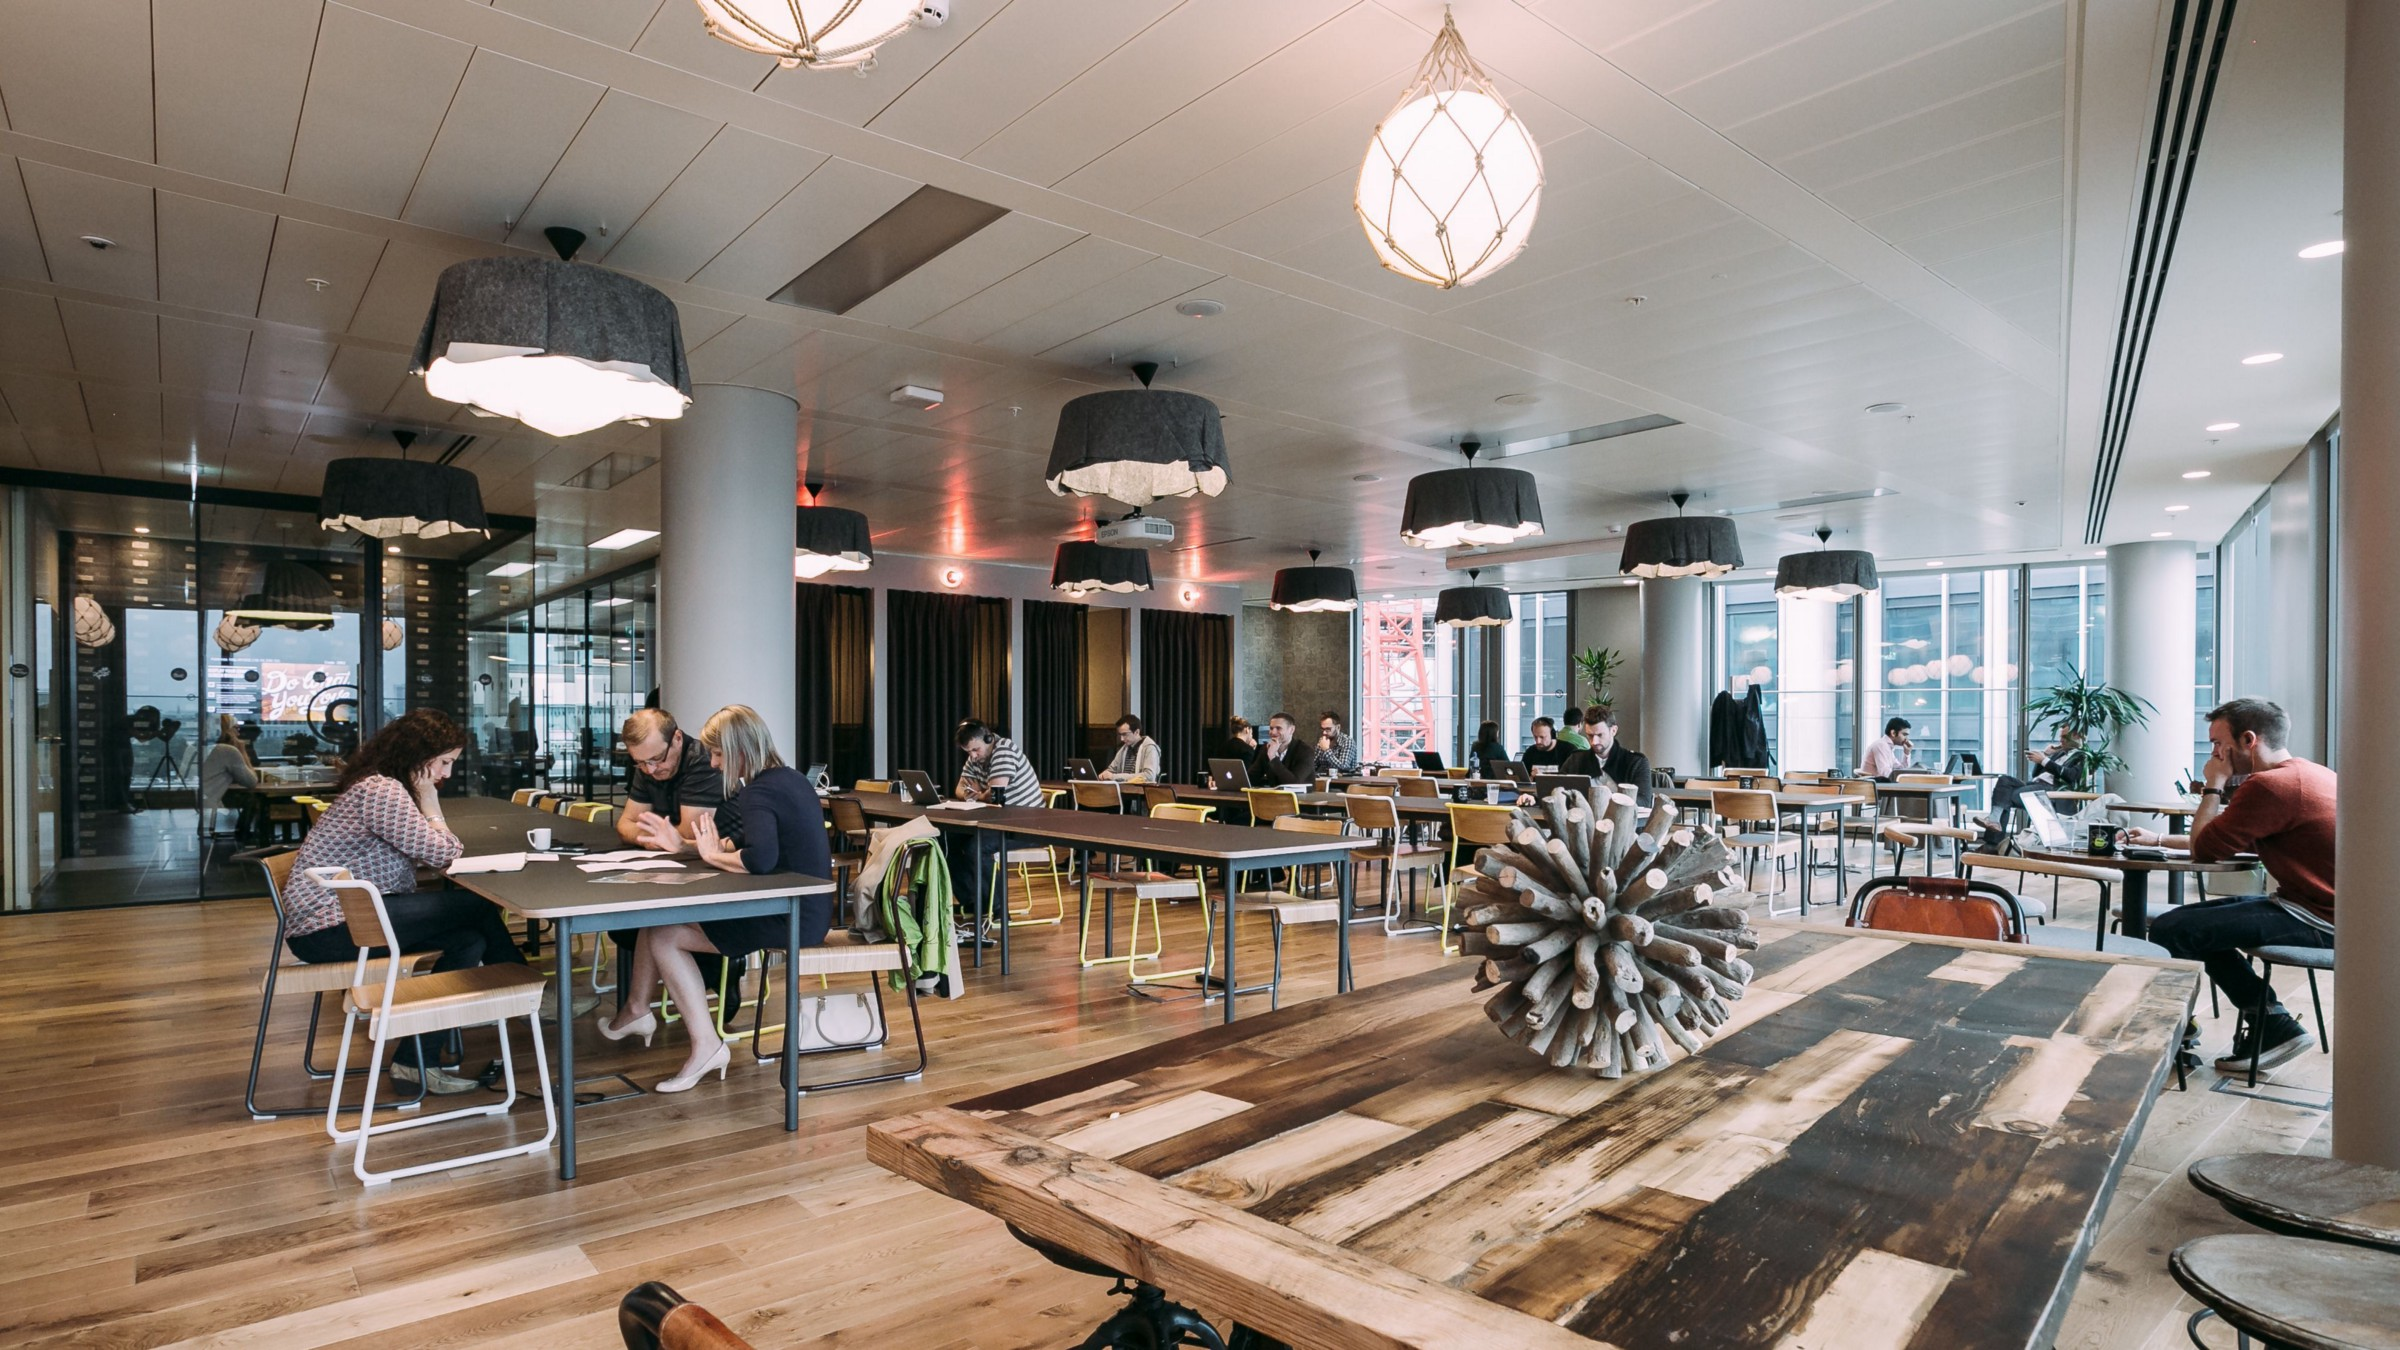 Exceptional One Option For Digital Nomad Work Is The Co Working Space. These Are  Membership Based Communal Offices Where Remote Workers, Freelancers And  Other ...